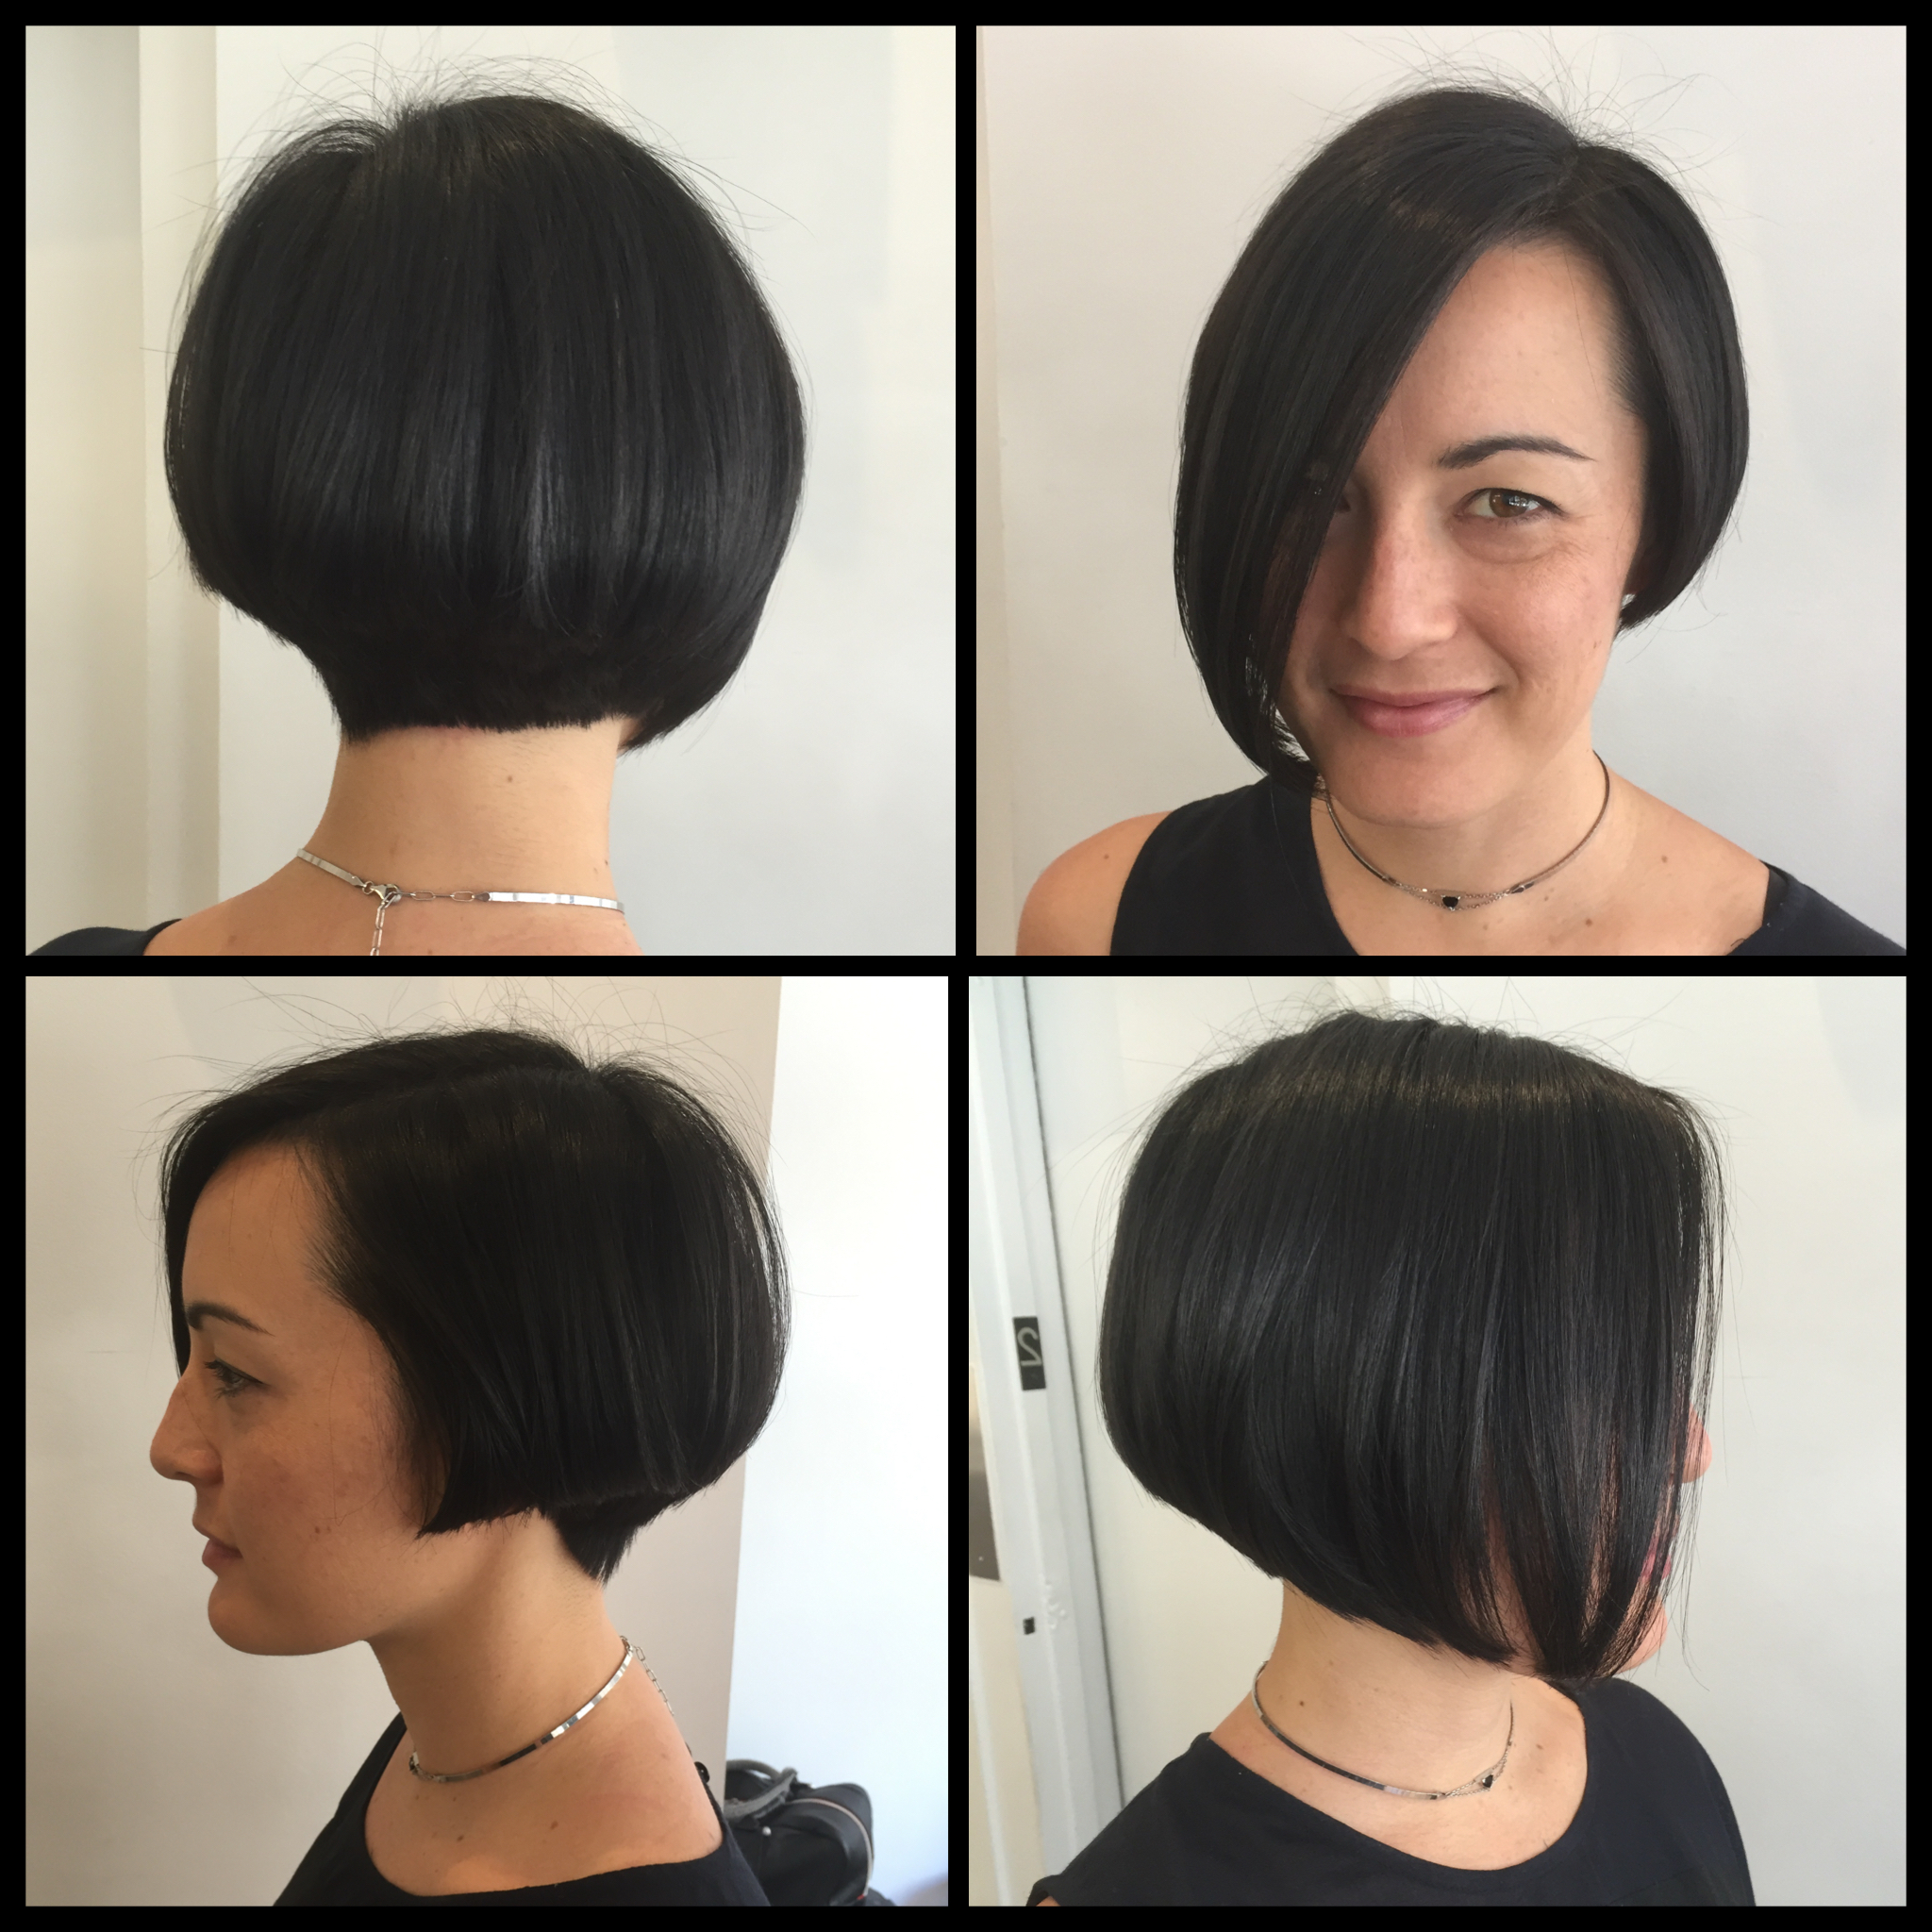 Ask The Expert: I Have A Big Forehead. What's The Best Short Cut For Throughout Short Hairstyles For Women With Big Foreheads (Gallery 11 of 25)